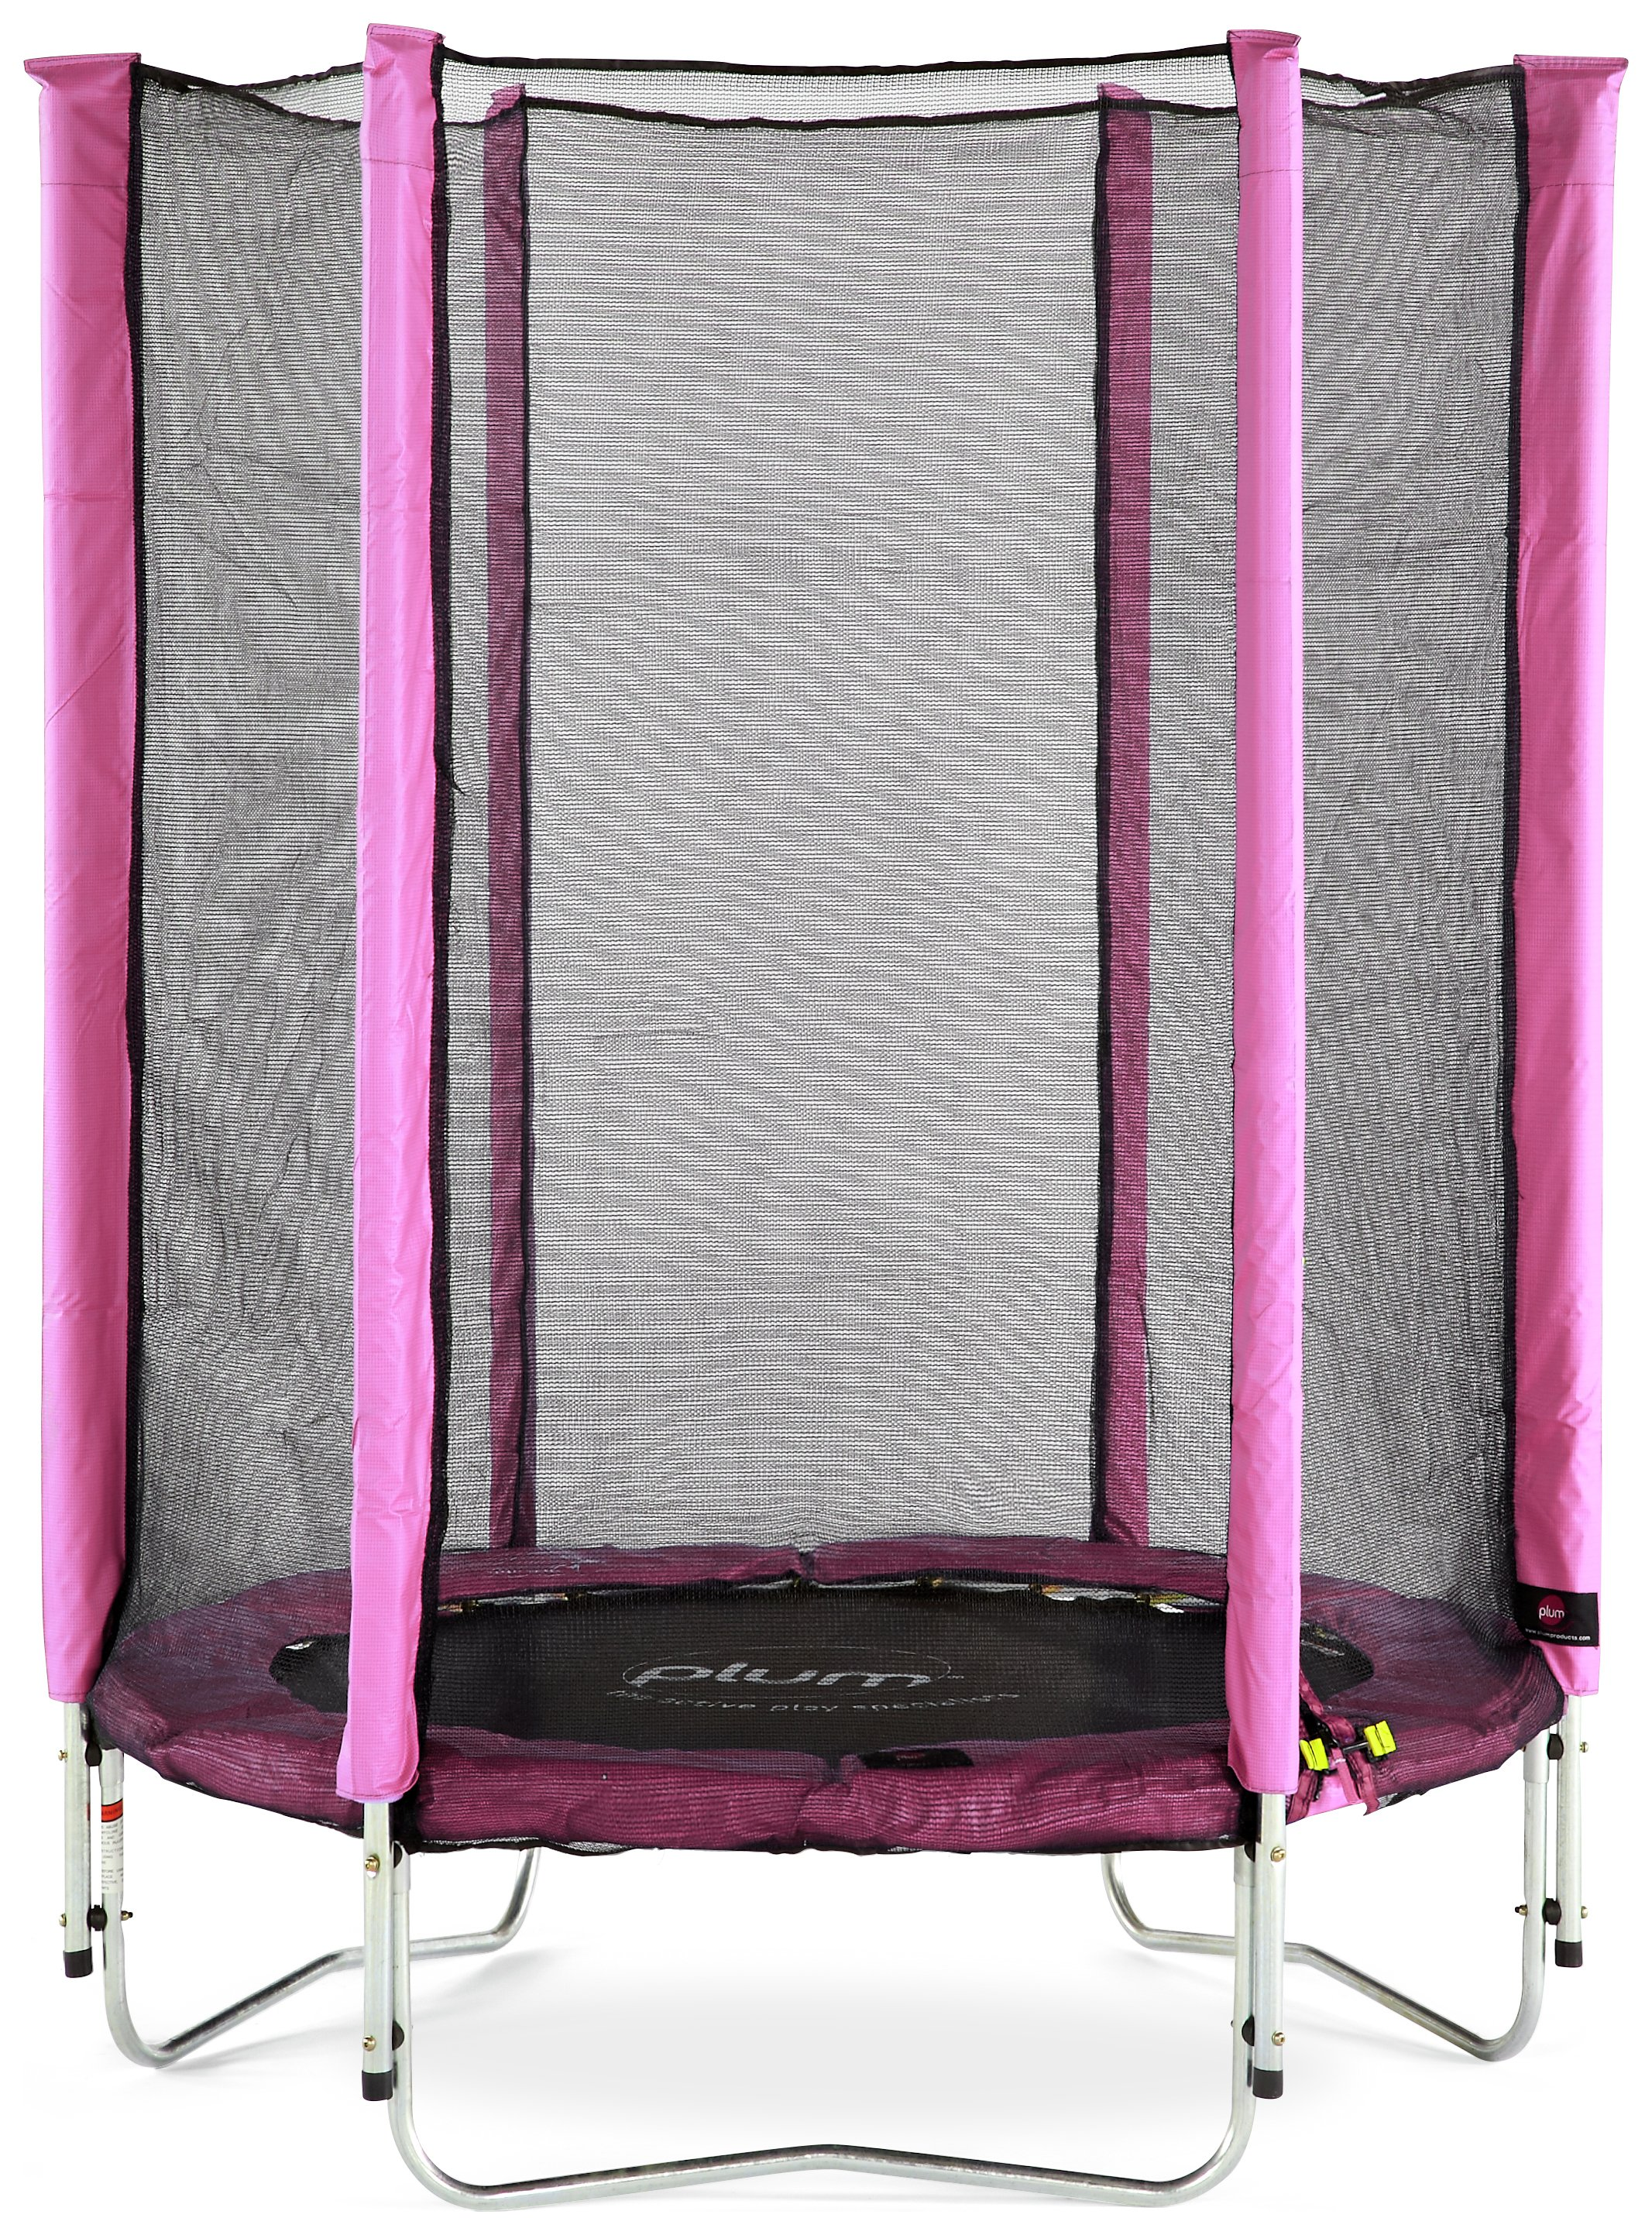 Plum Junior Trampoline and Enclosure - Pink